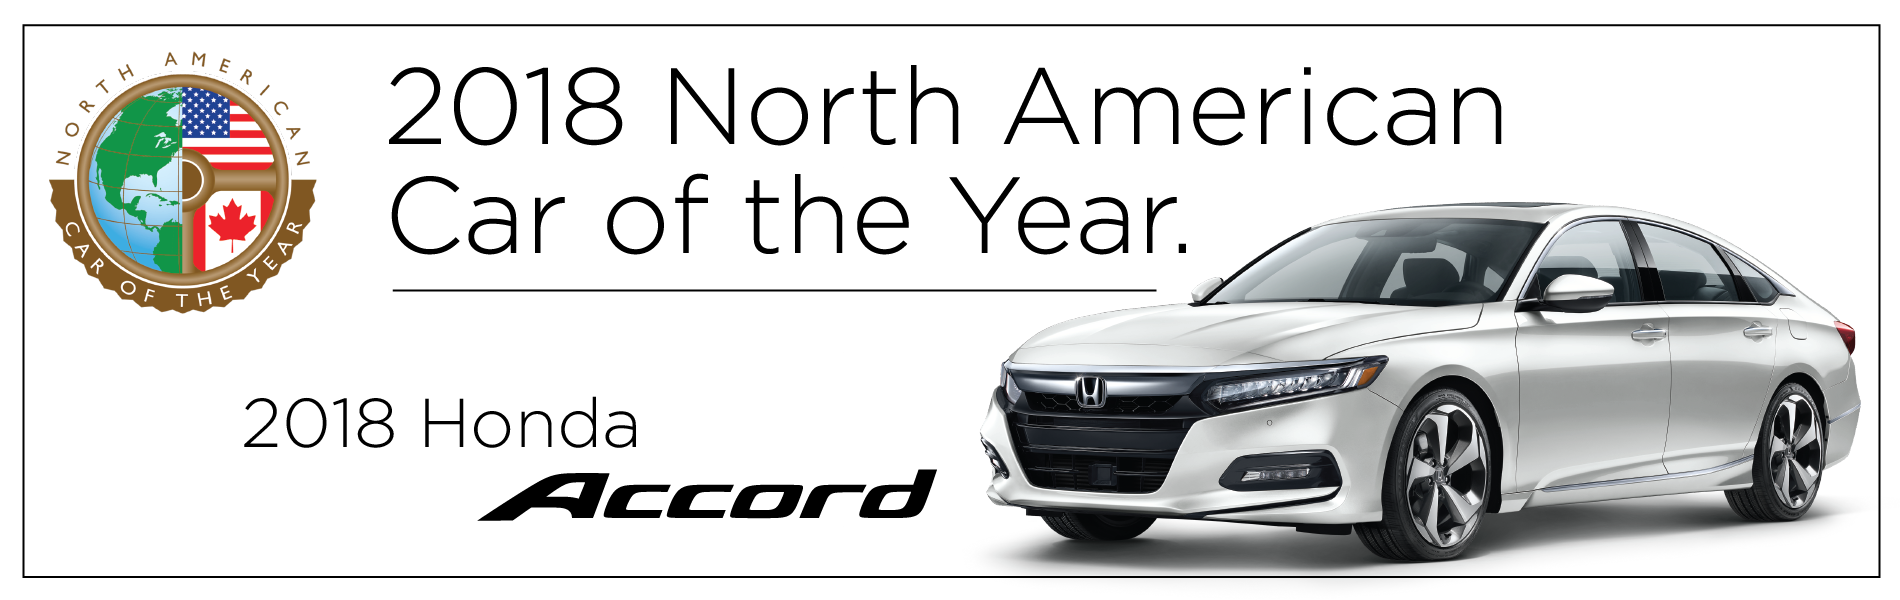 2018 Honda Accord recieved 2018 North American Car of the Year award.